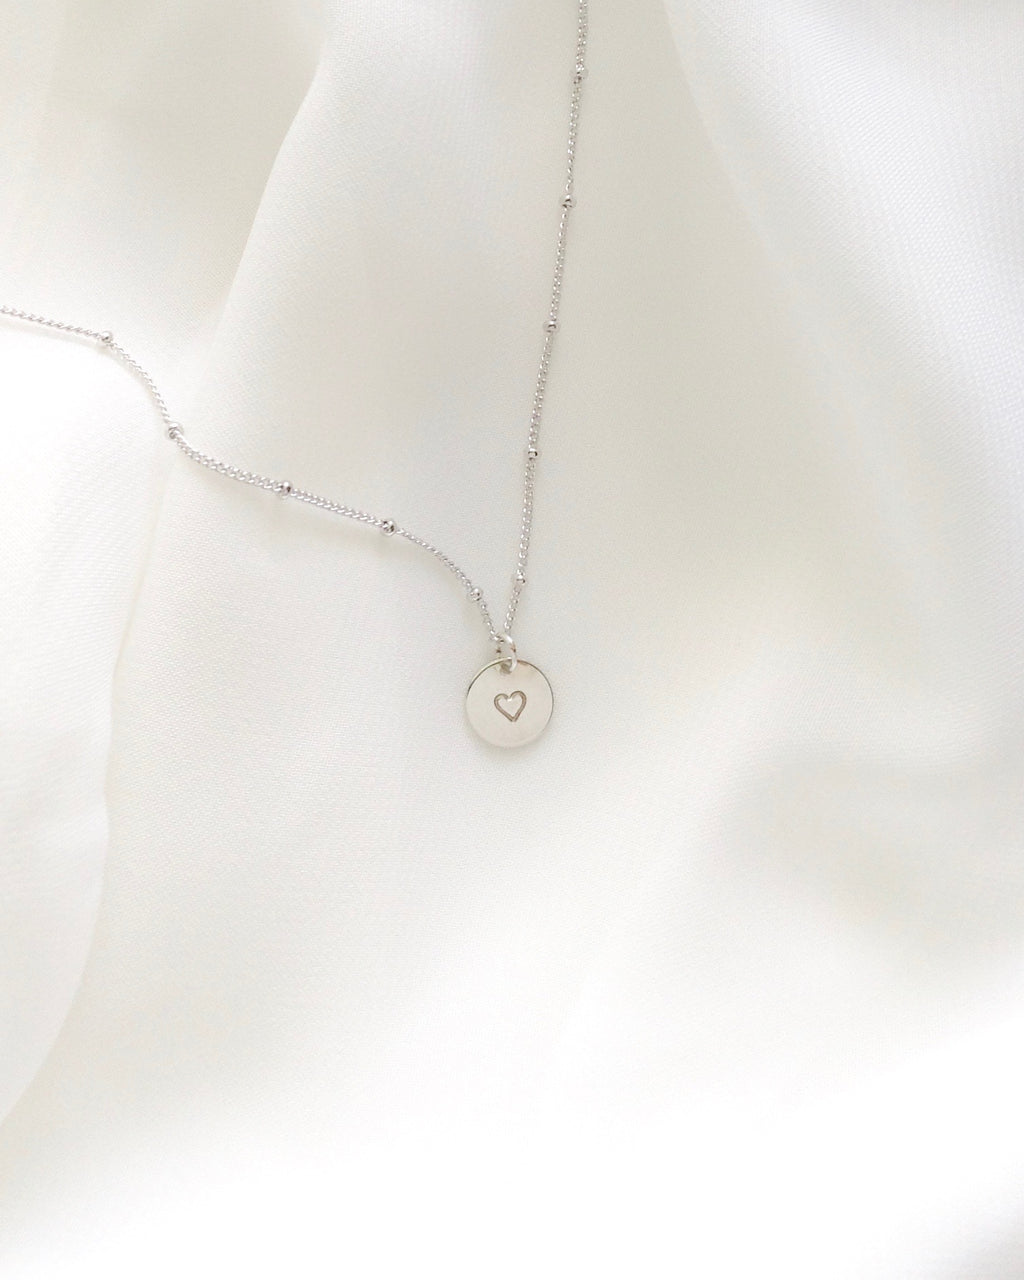 Tiny Heart Necklace in Gold Filled or Sterling Silver | IB Jewelry